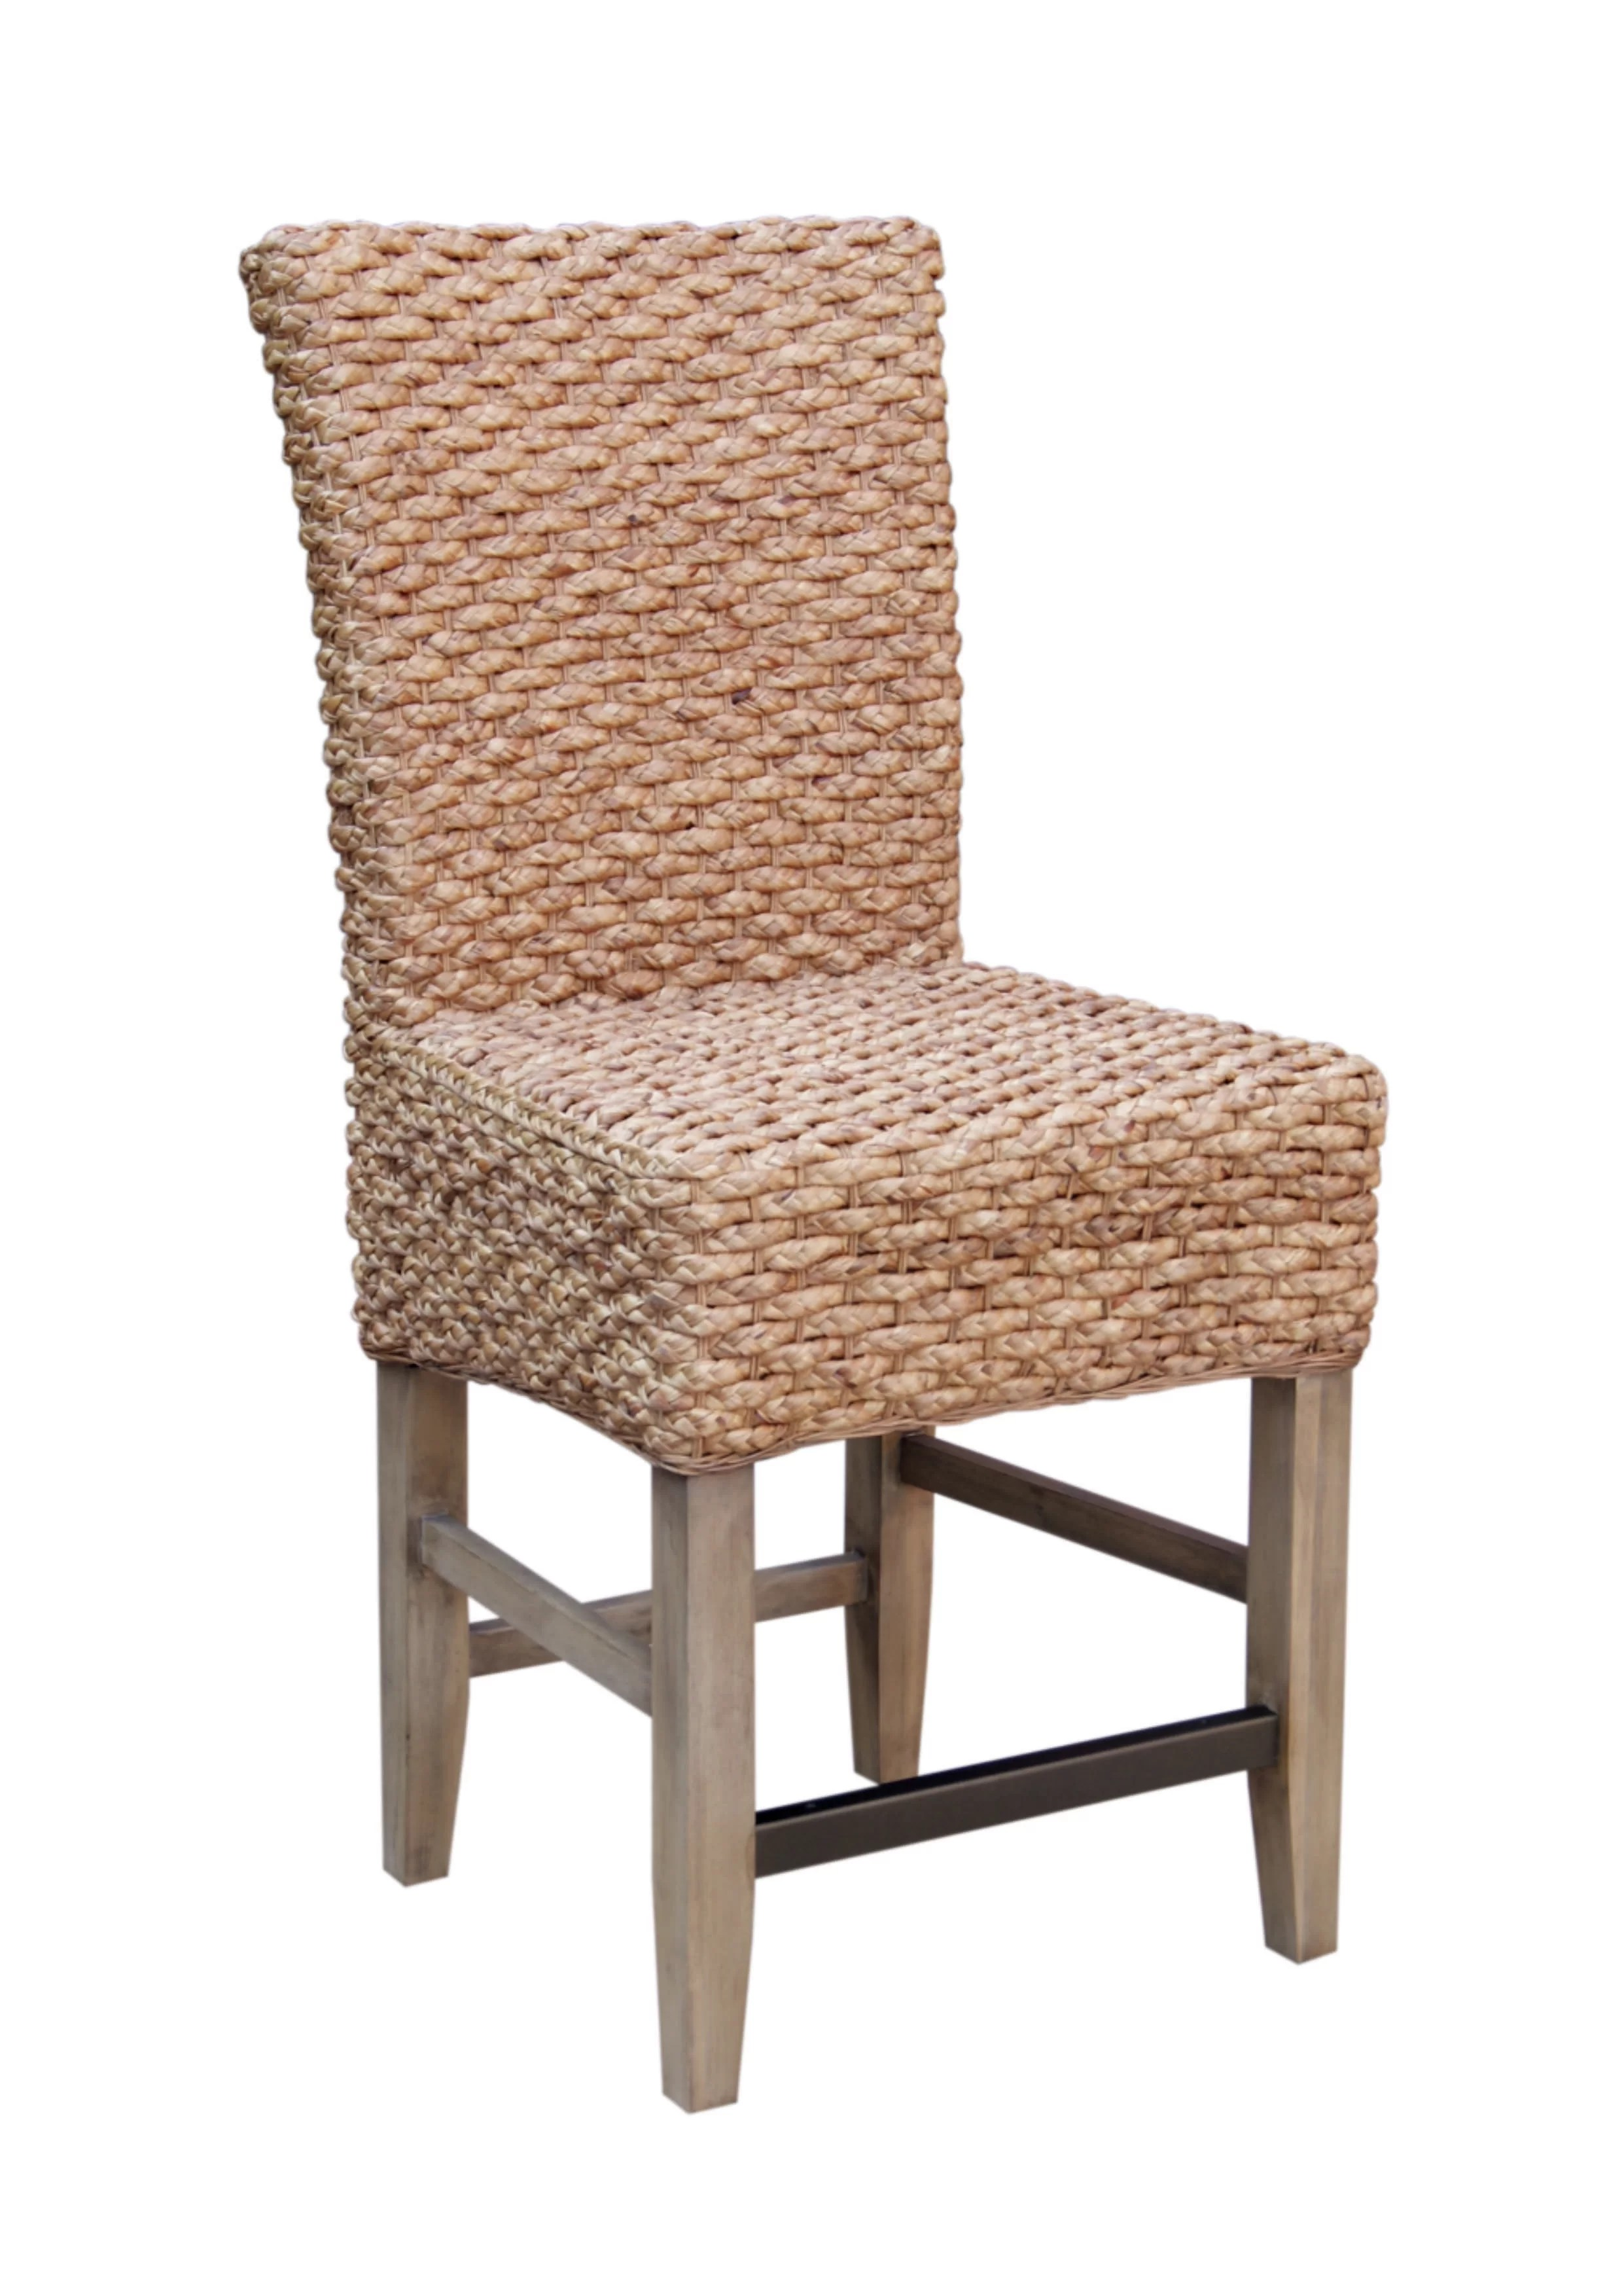 Seagrass Dining Chairs Nyi Seagrass Counter Dining Chair